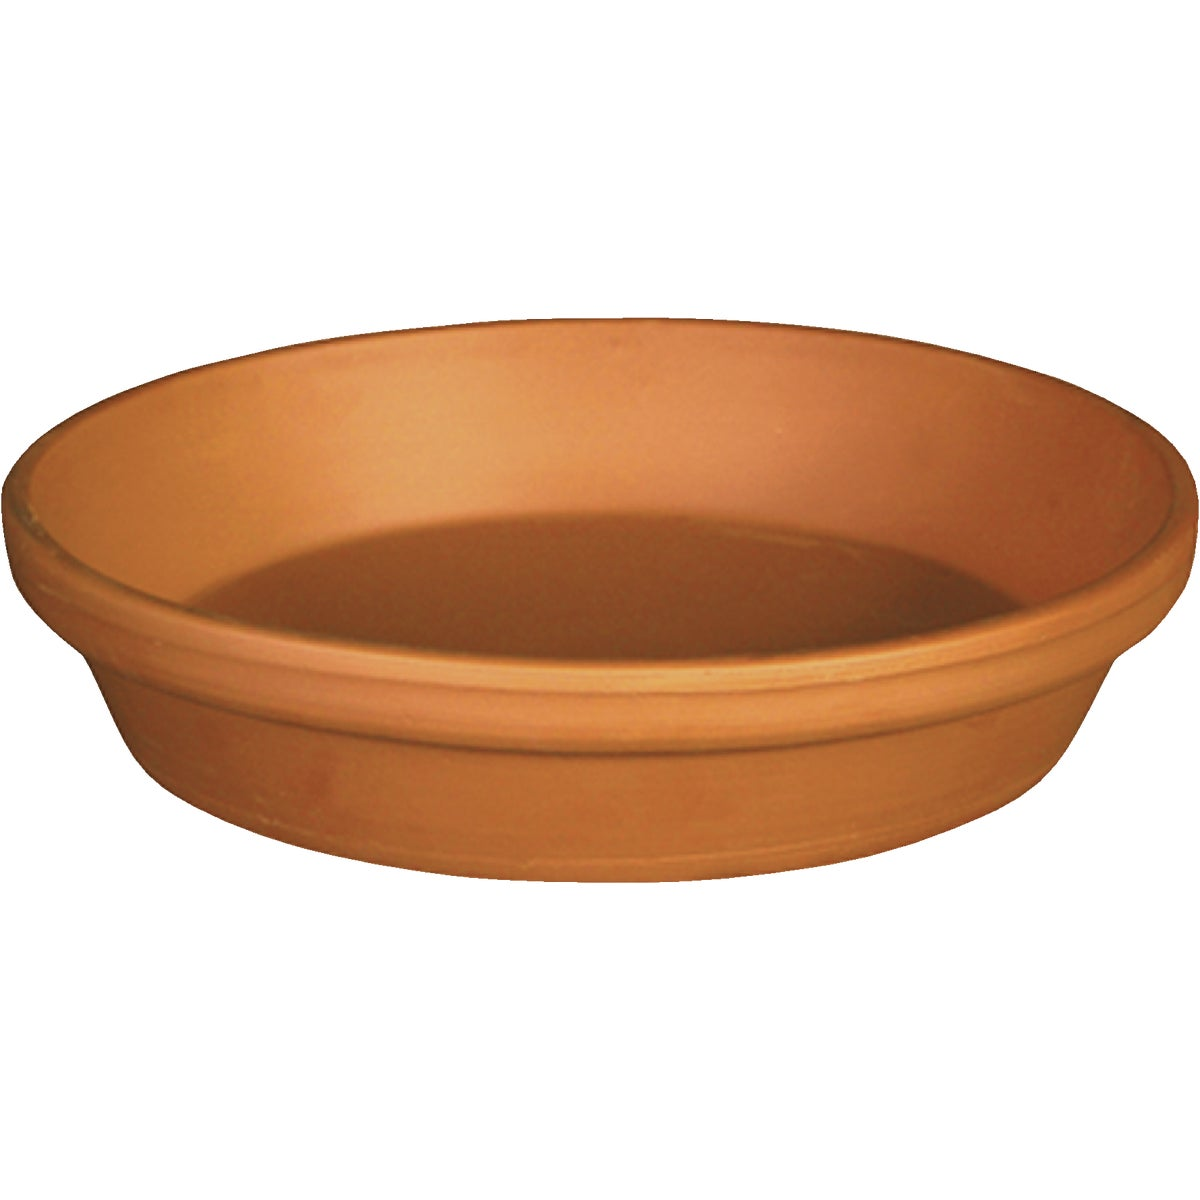 "7.5"" TC CLAY SAUCER - M8230PZ by Deroma"